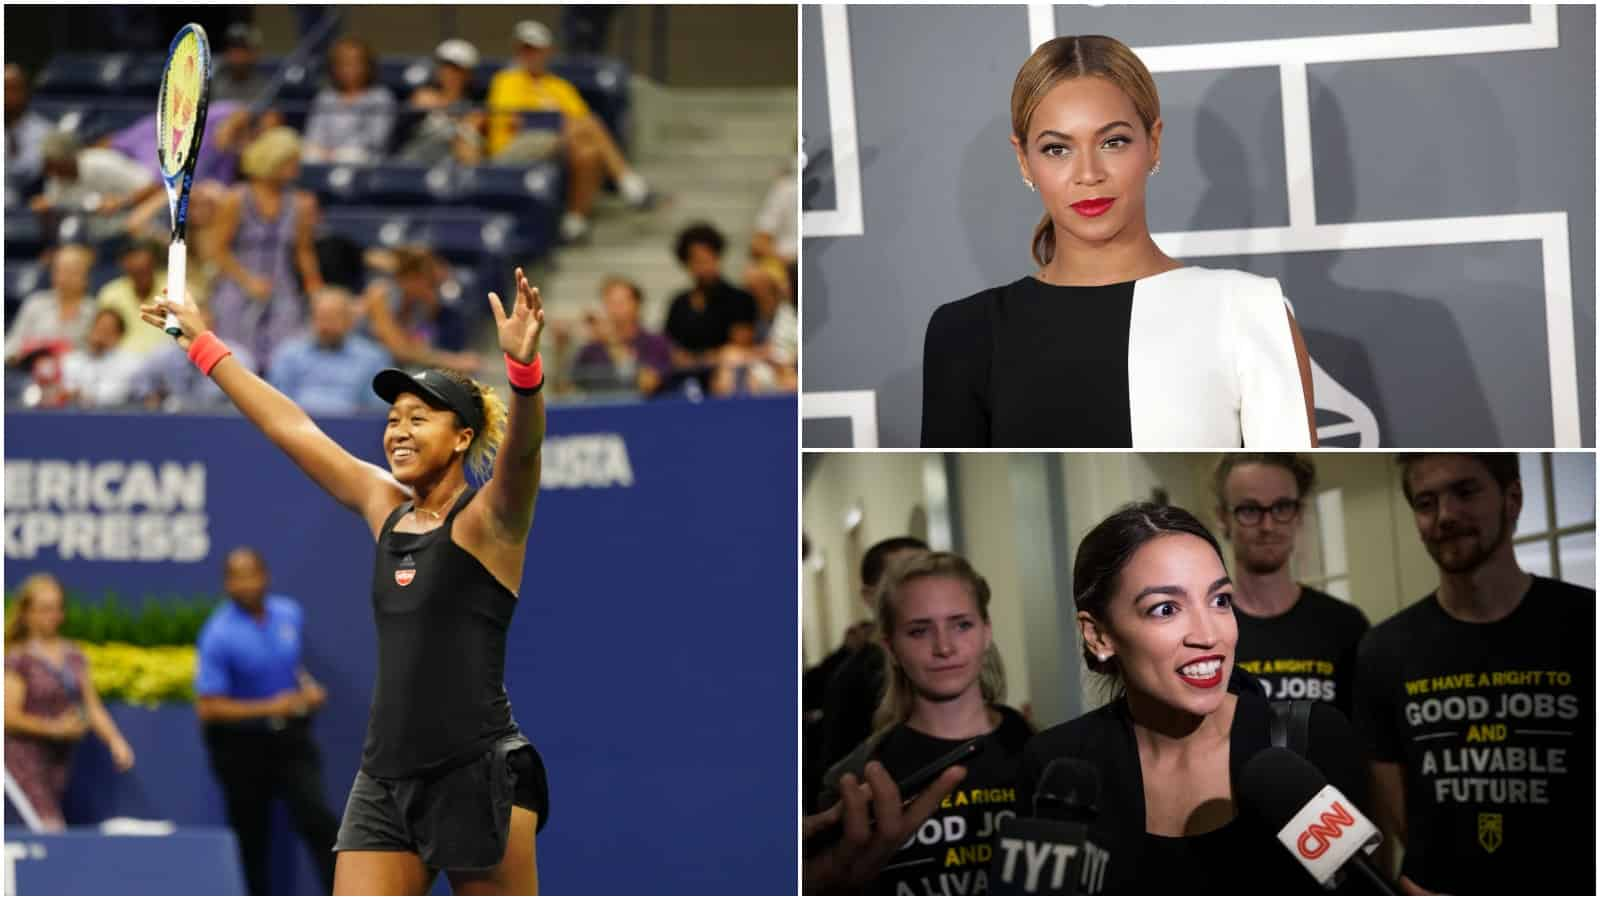 10 Huge Accomplishments For People of Color in 2018